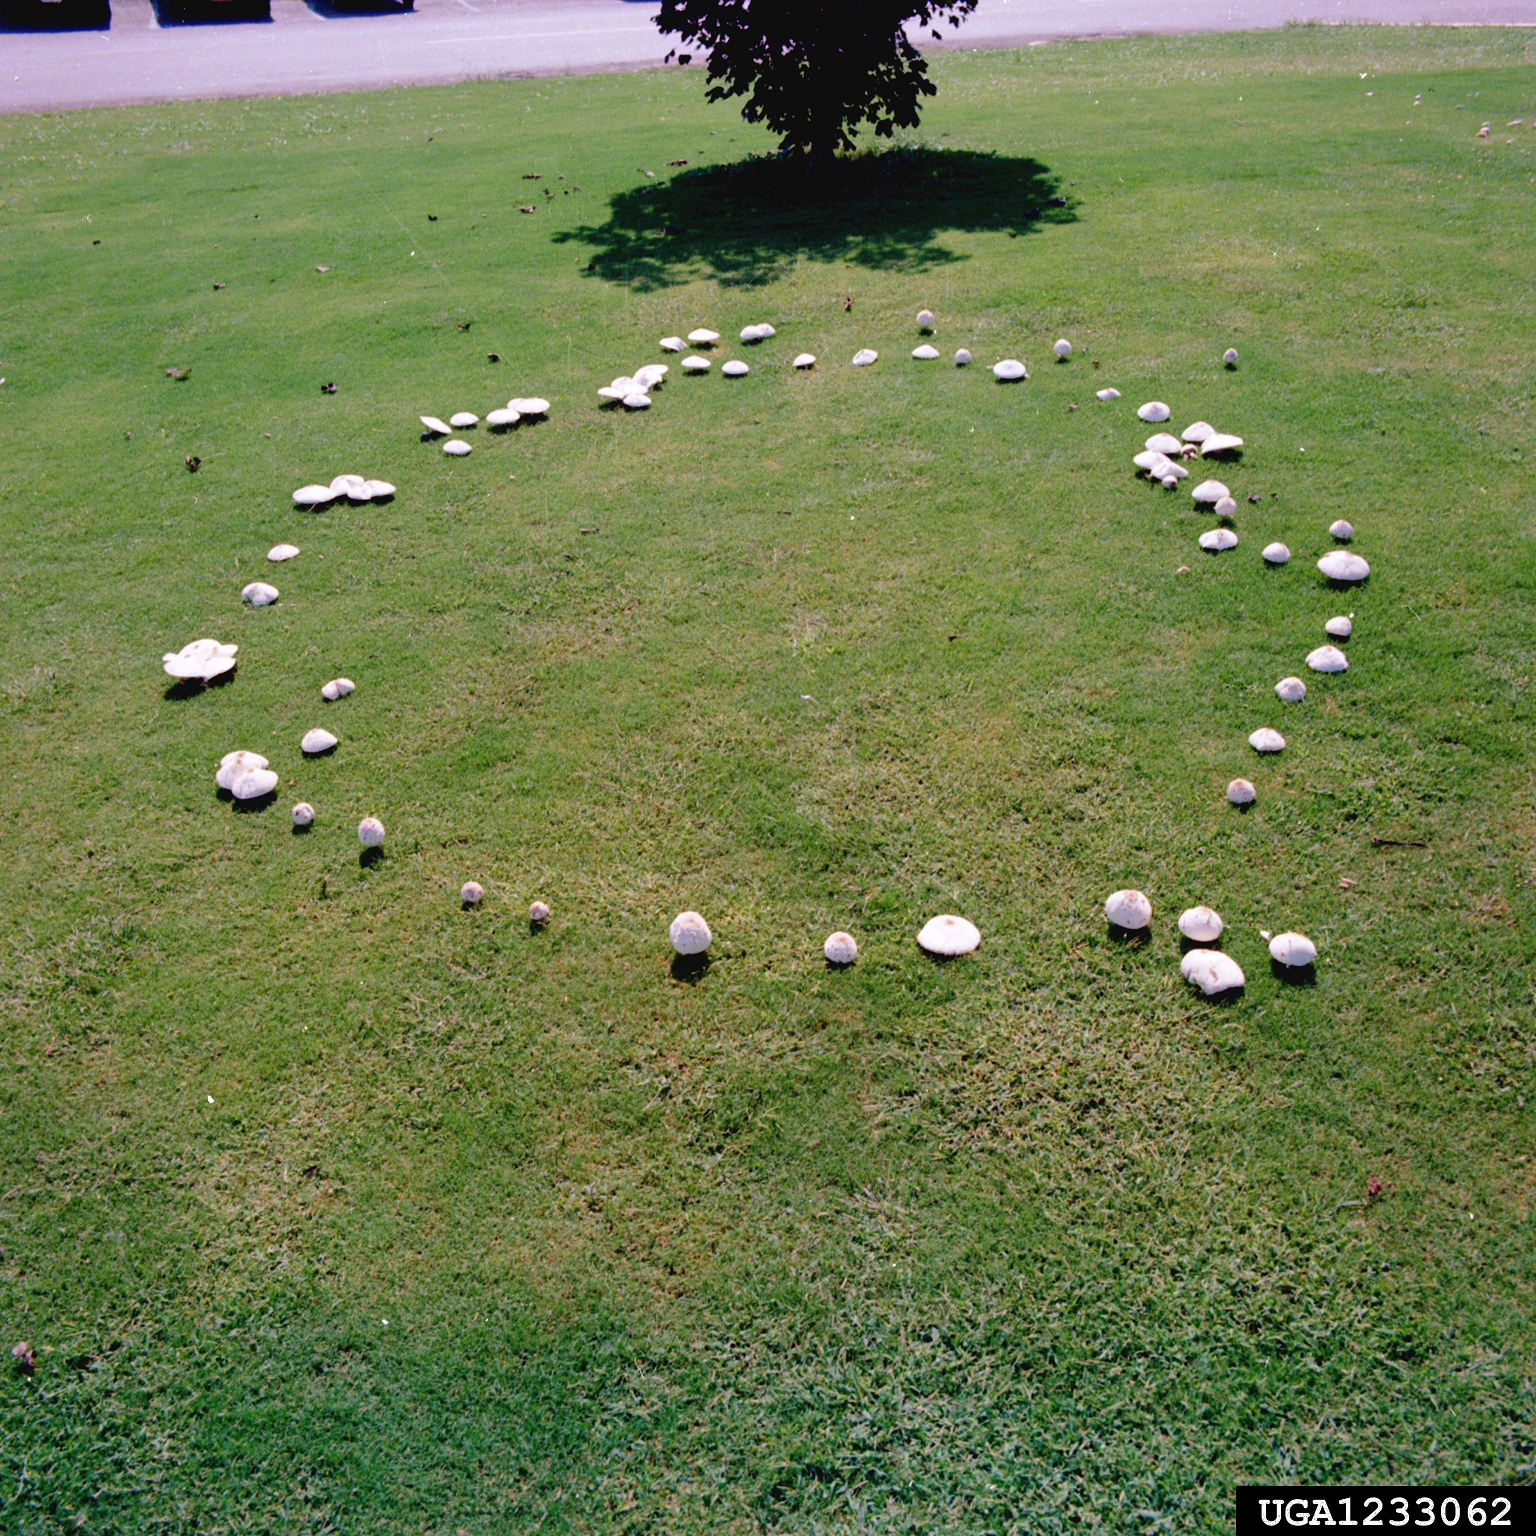 Growth of fairy ring fungi begin in the center of a ring and expand outward in a uniform, circular pattern over time. Mushrooms might only be visible during periods of wet weather, particularly in the fall.